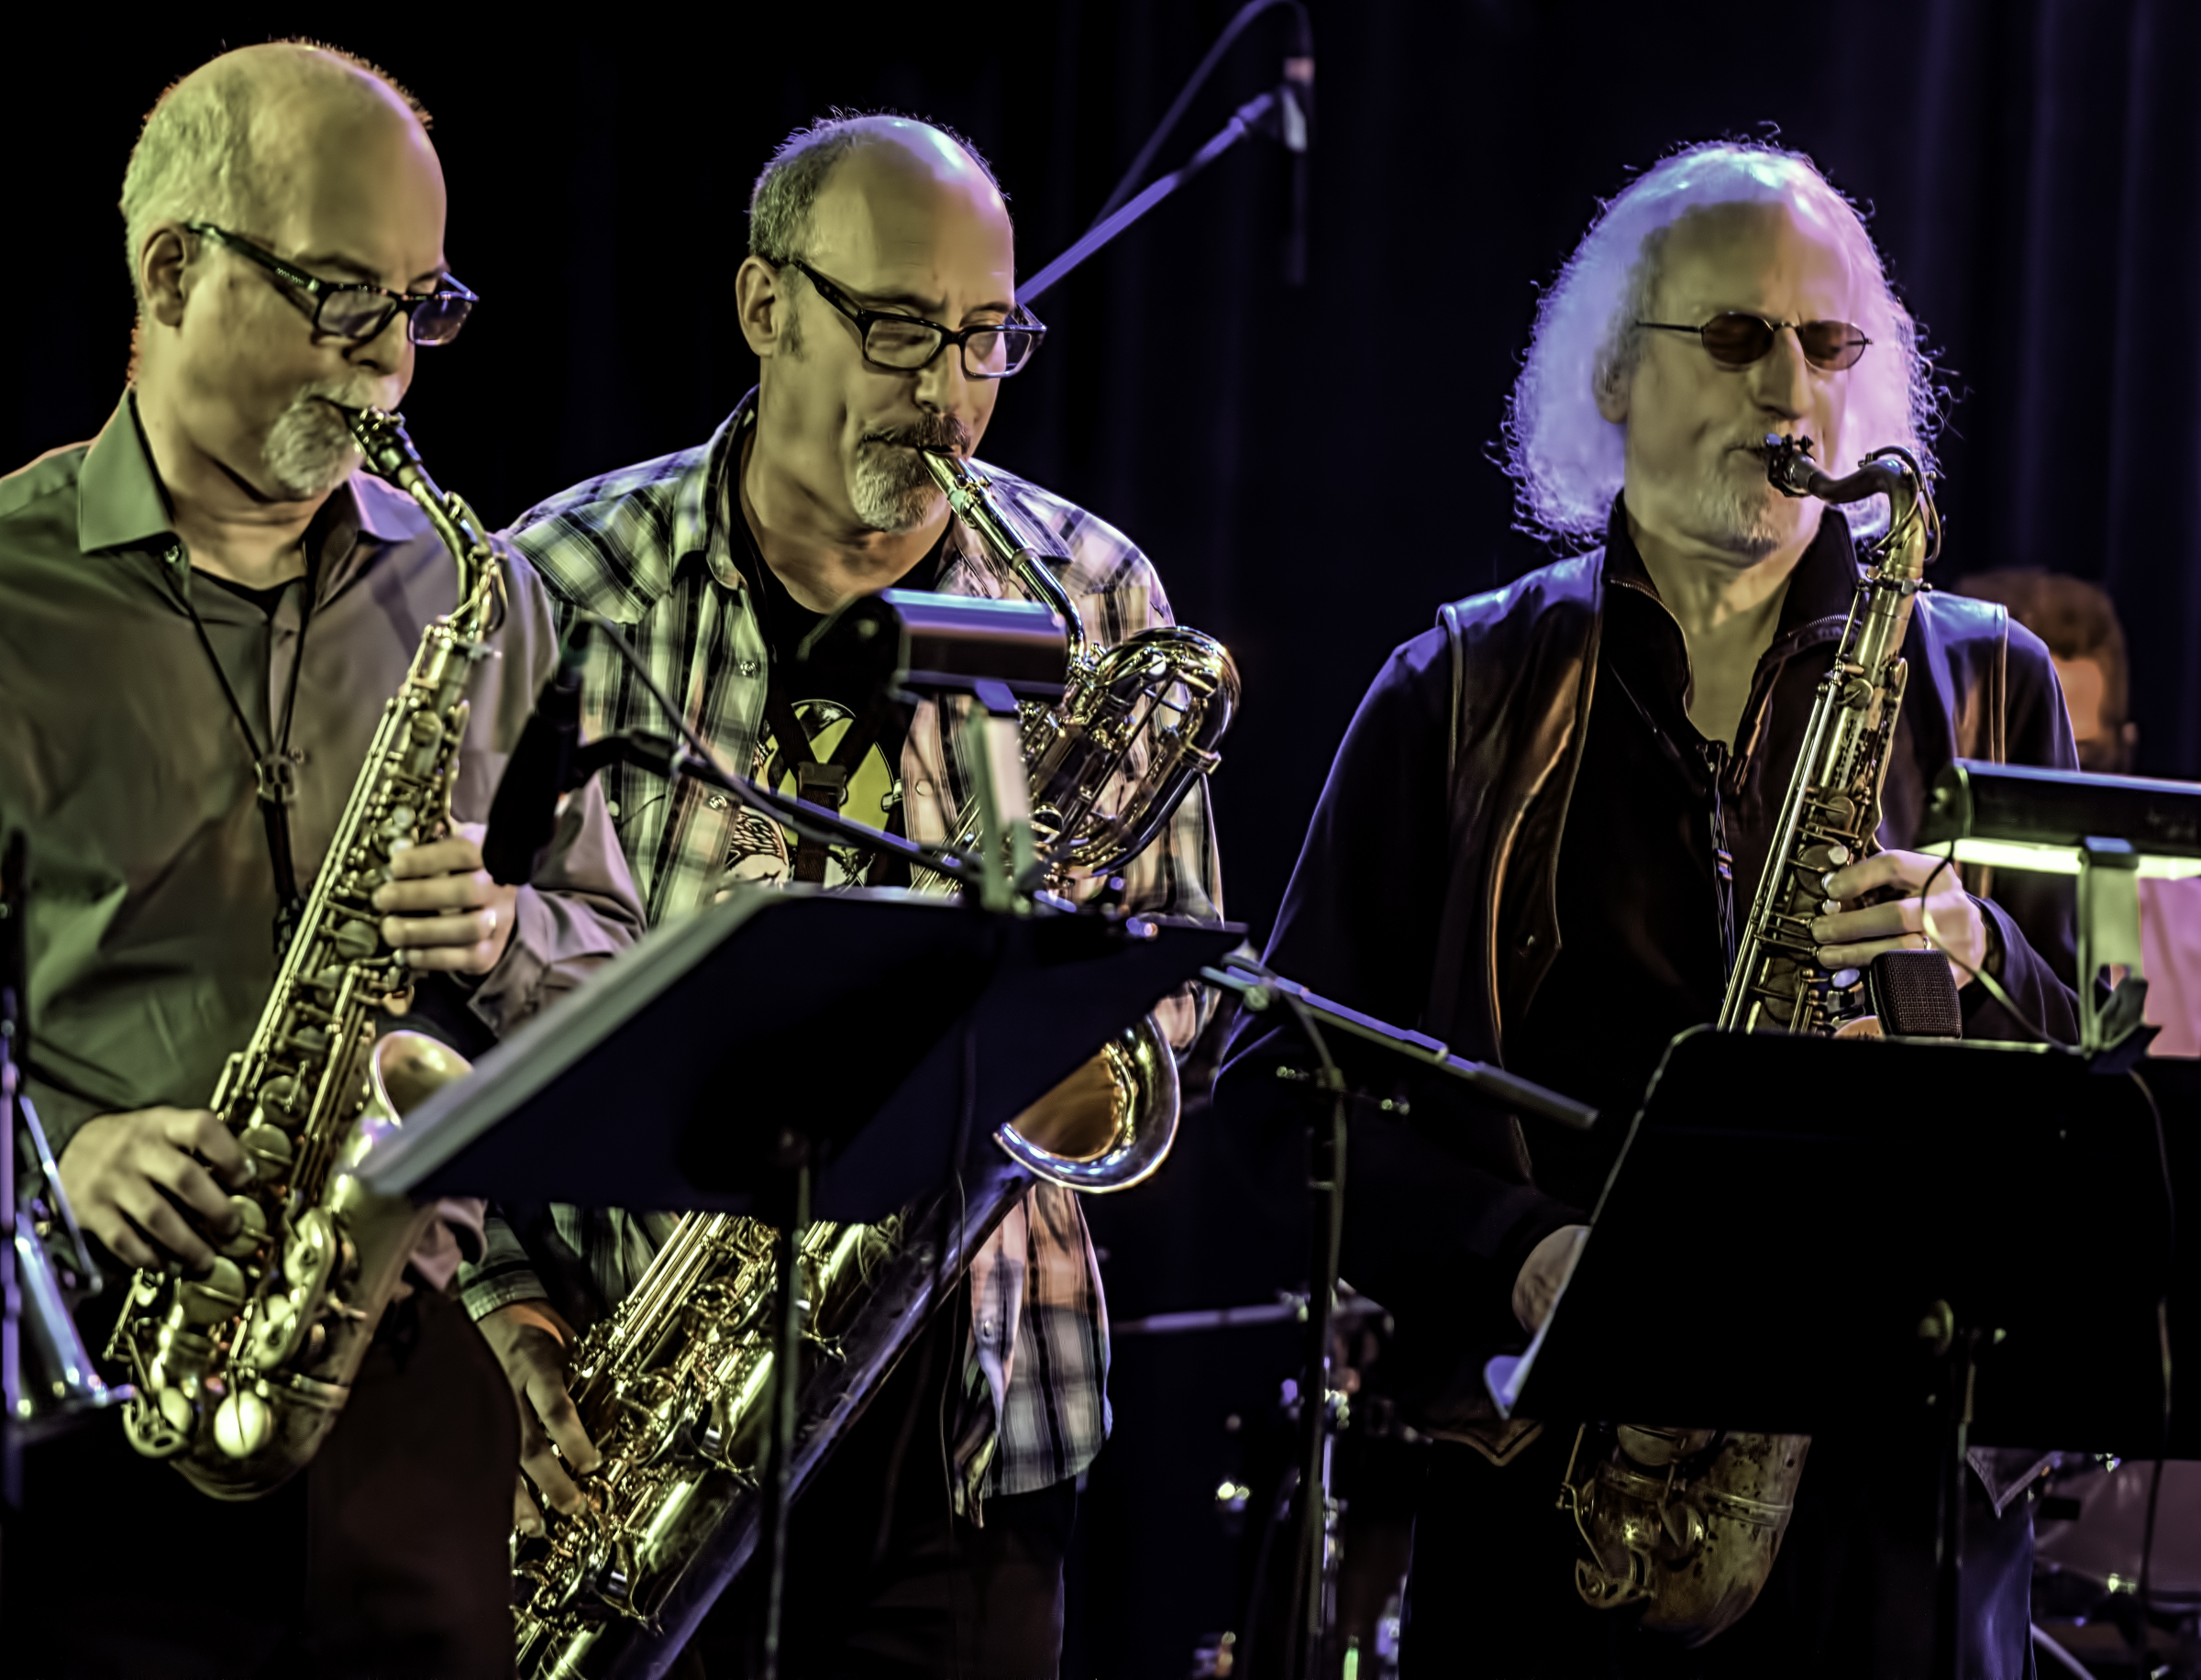 Steve Adams, Jon Raskin and Larry Ochs with Rova's Electric Ascension at the NYC Winter Jazzfest 2016